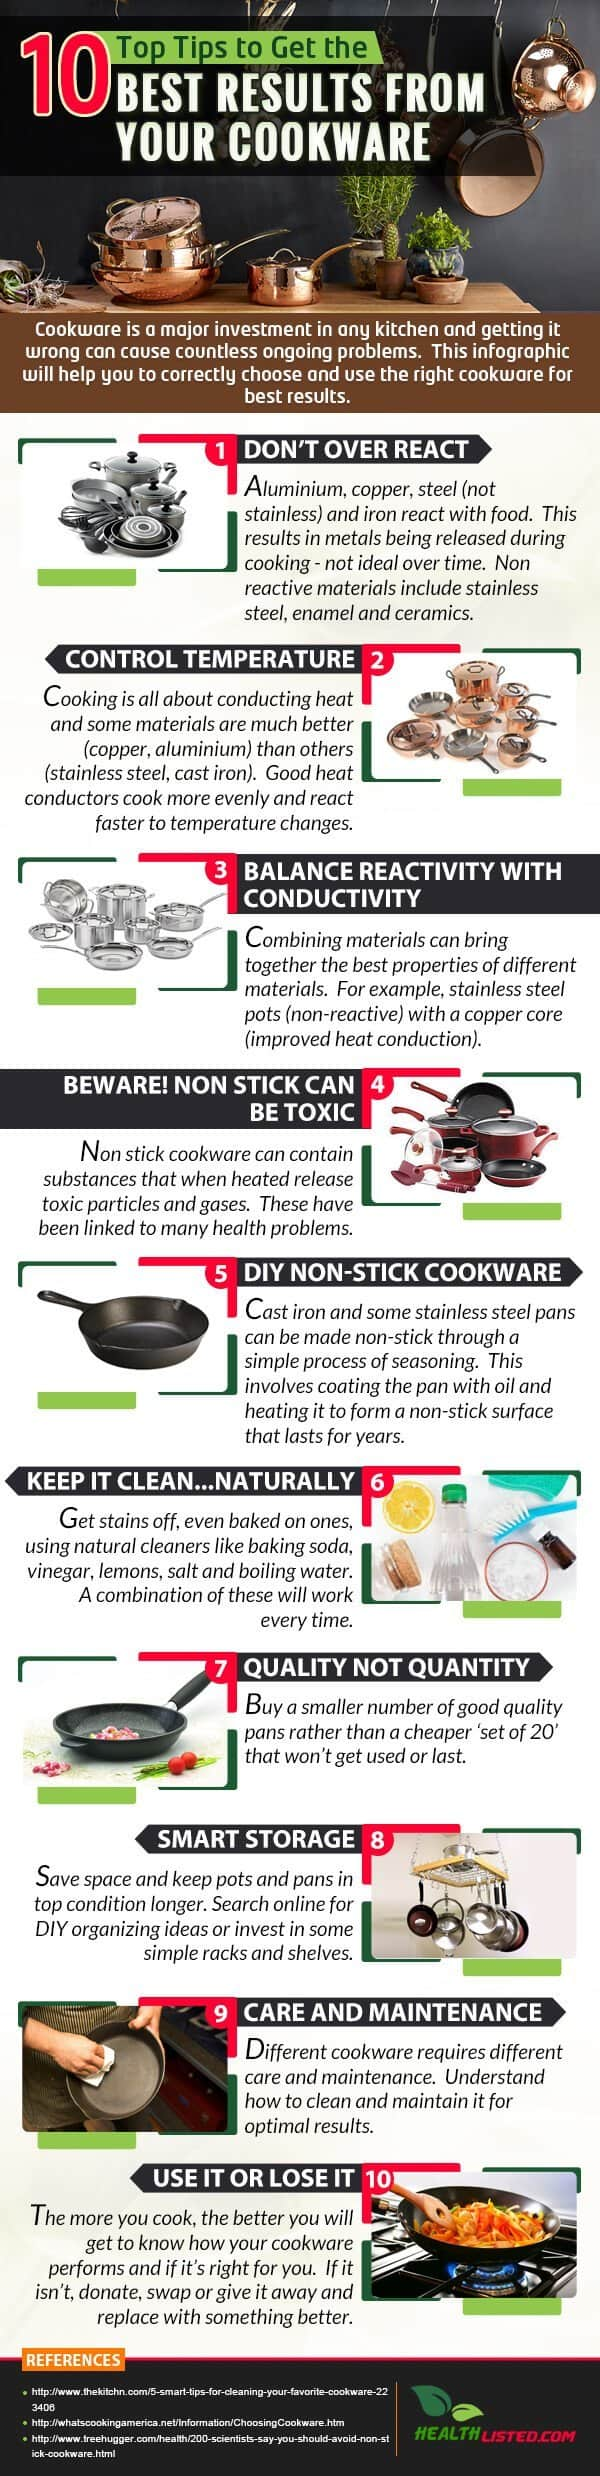 10-top-tips-to-get-the-best-results-from-your-cookware